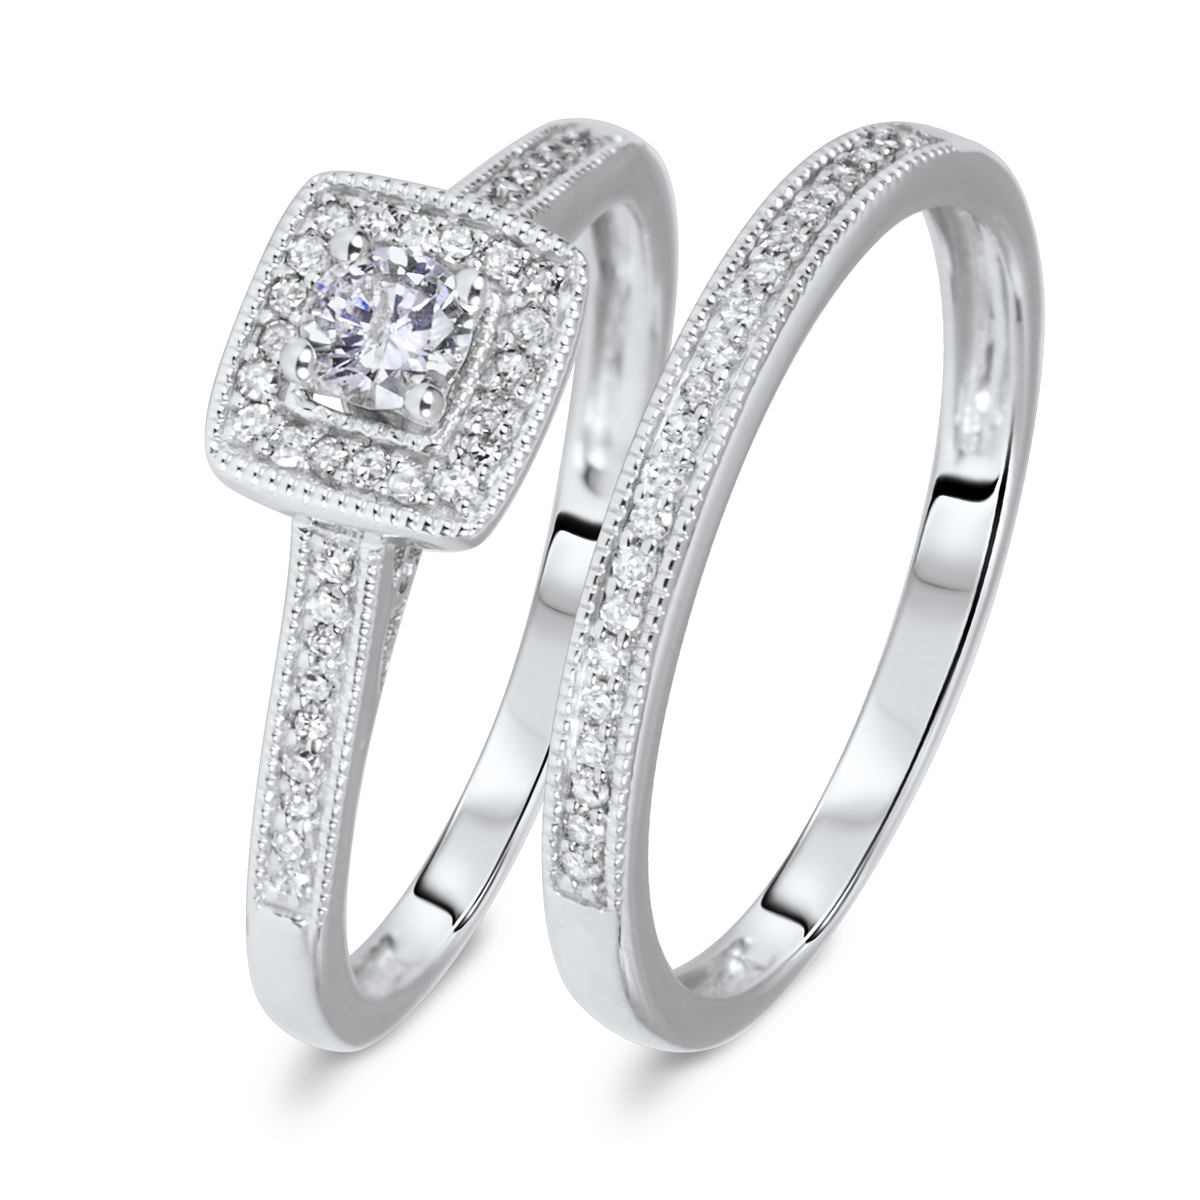 1/3 CT. T.W. Round Cut Diamond Ladies Bridal Wedding Ring Set 14K White Gold